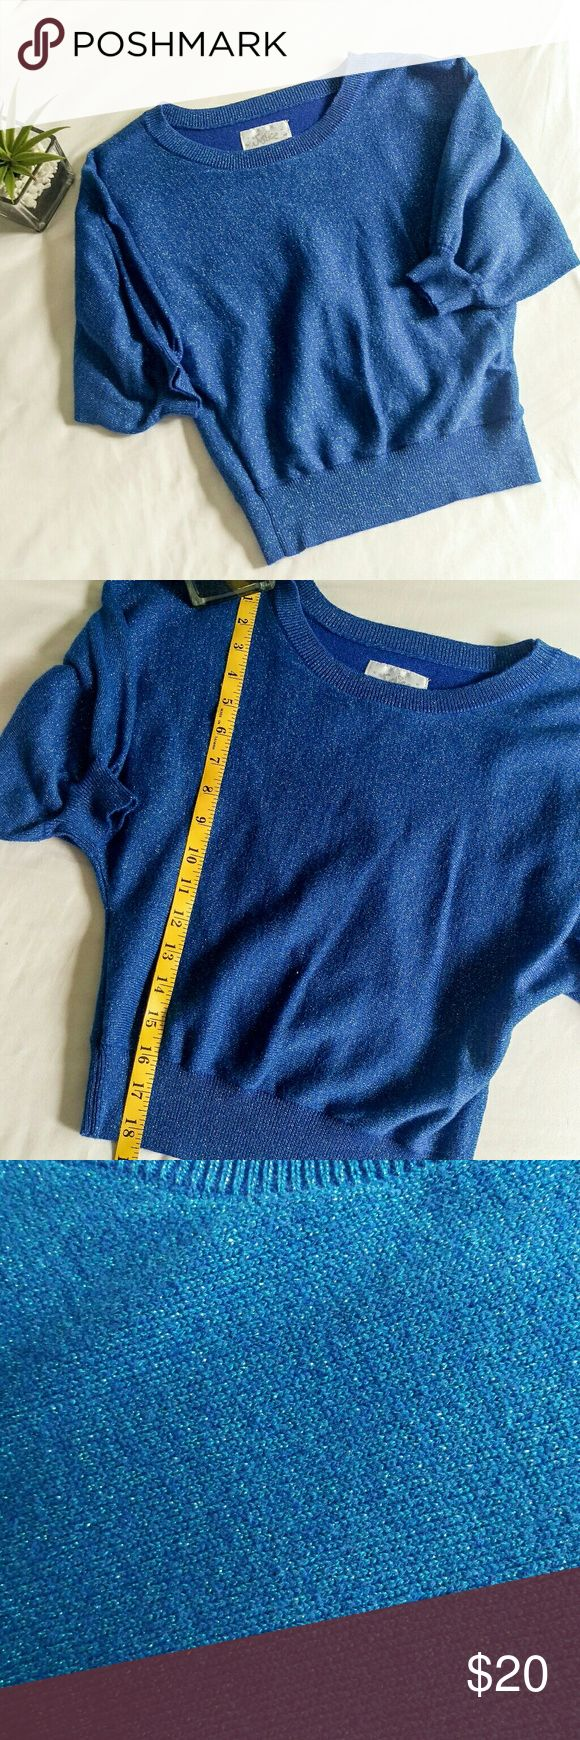 🆕 Girls' Metallic Crop Sweater Girls' royal blue metallic crop sweater from Justice in excellent condition, looks new! Has batwing /dolman style sleeves for a loose fit. I'm not sure how short or long of a crop this is so I've included a picture with length measurement so you can compare it on your child. Justice Shirts & Tops Sweaters